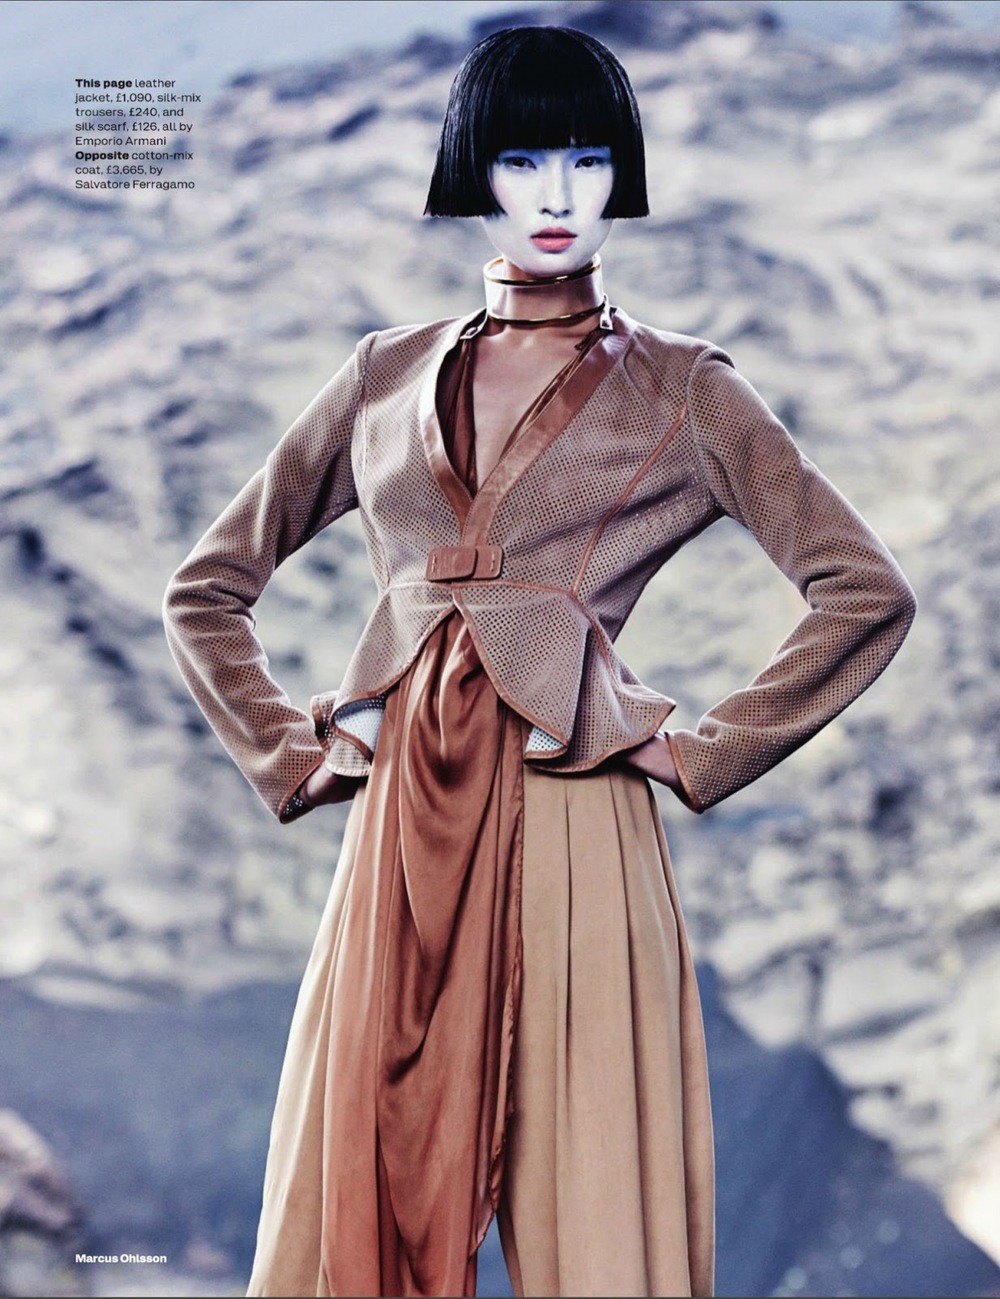 Marcus Ohlsson / Wang Xiao / Anne-Marie Curtis / Elle UK / March 2013